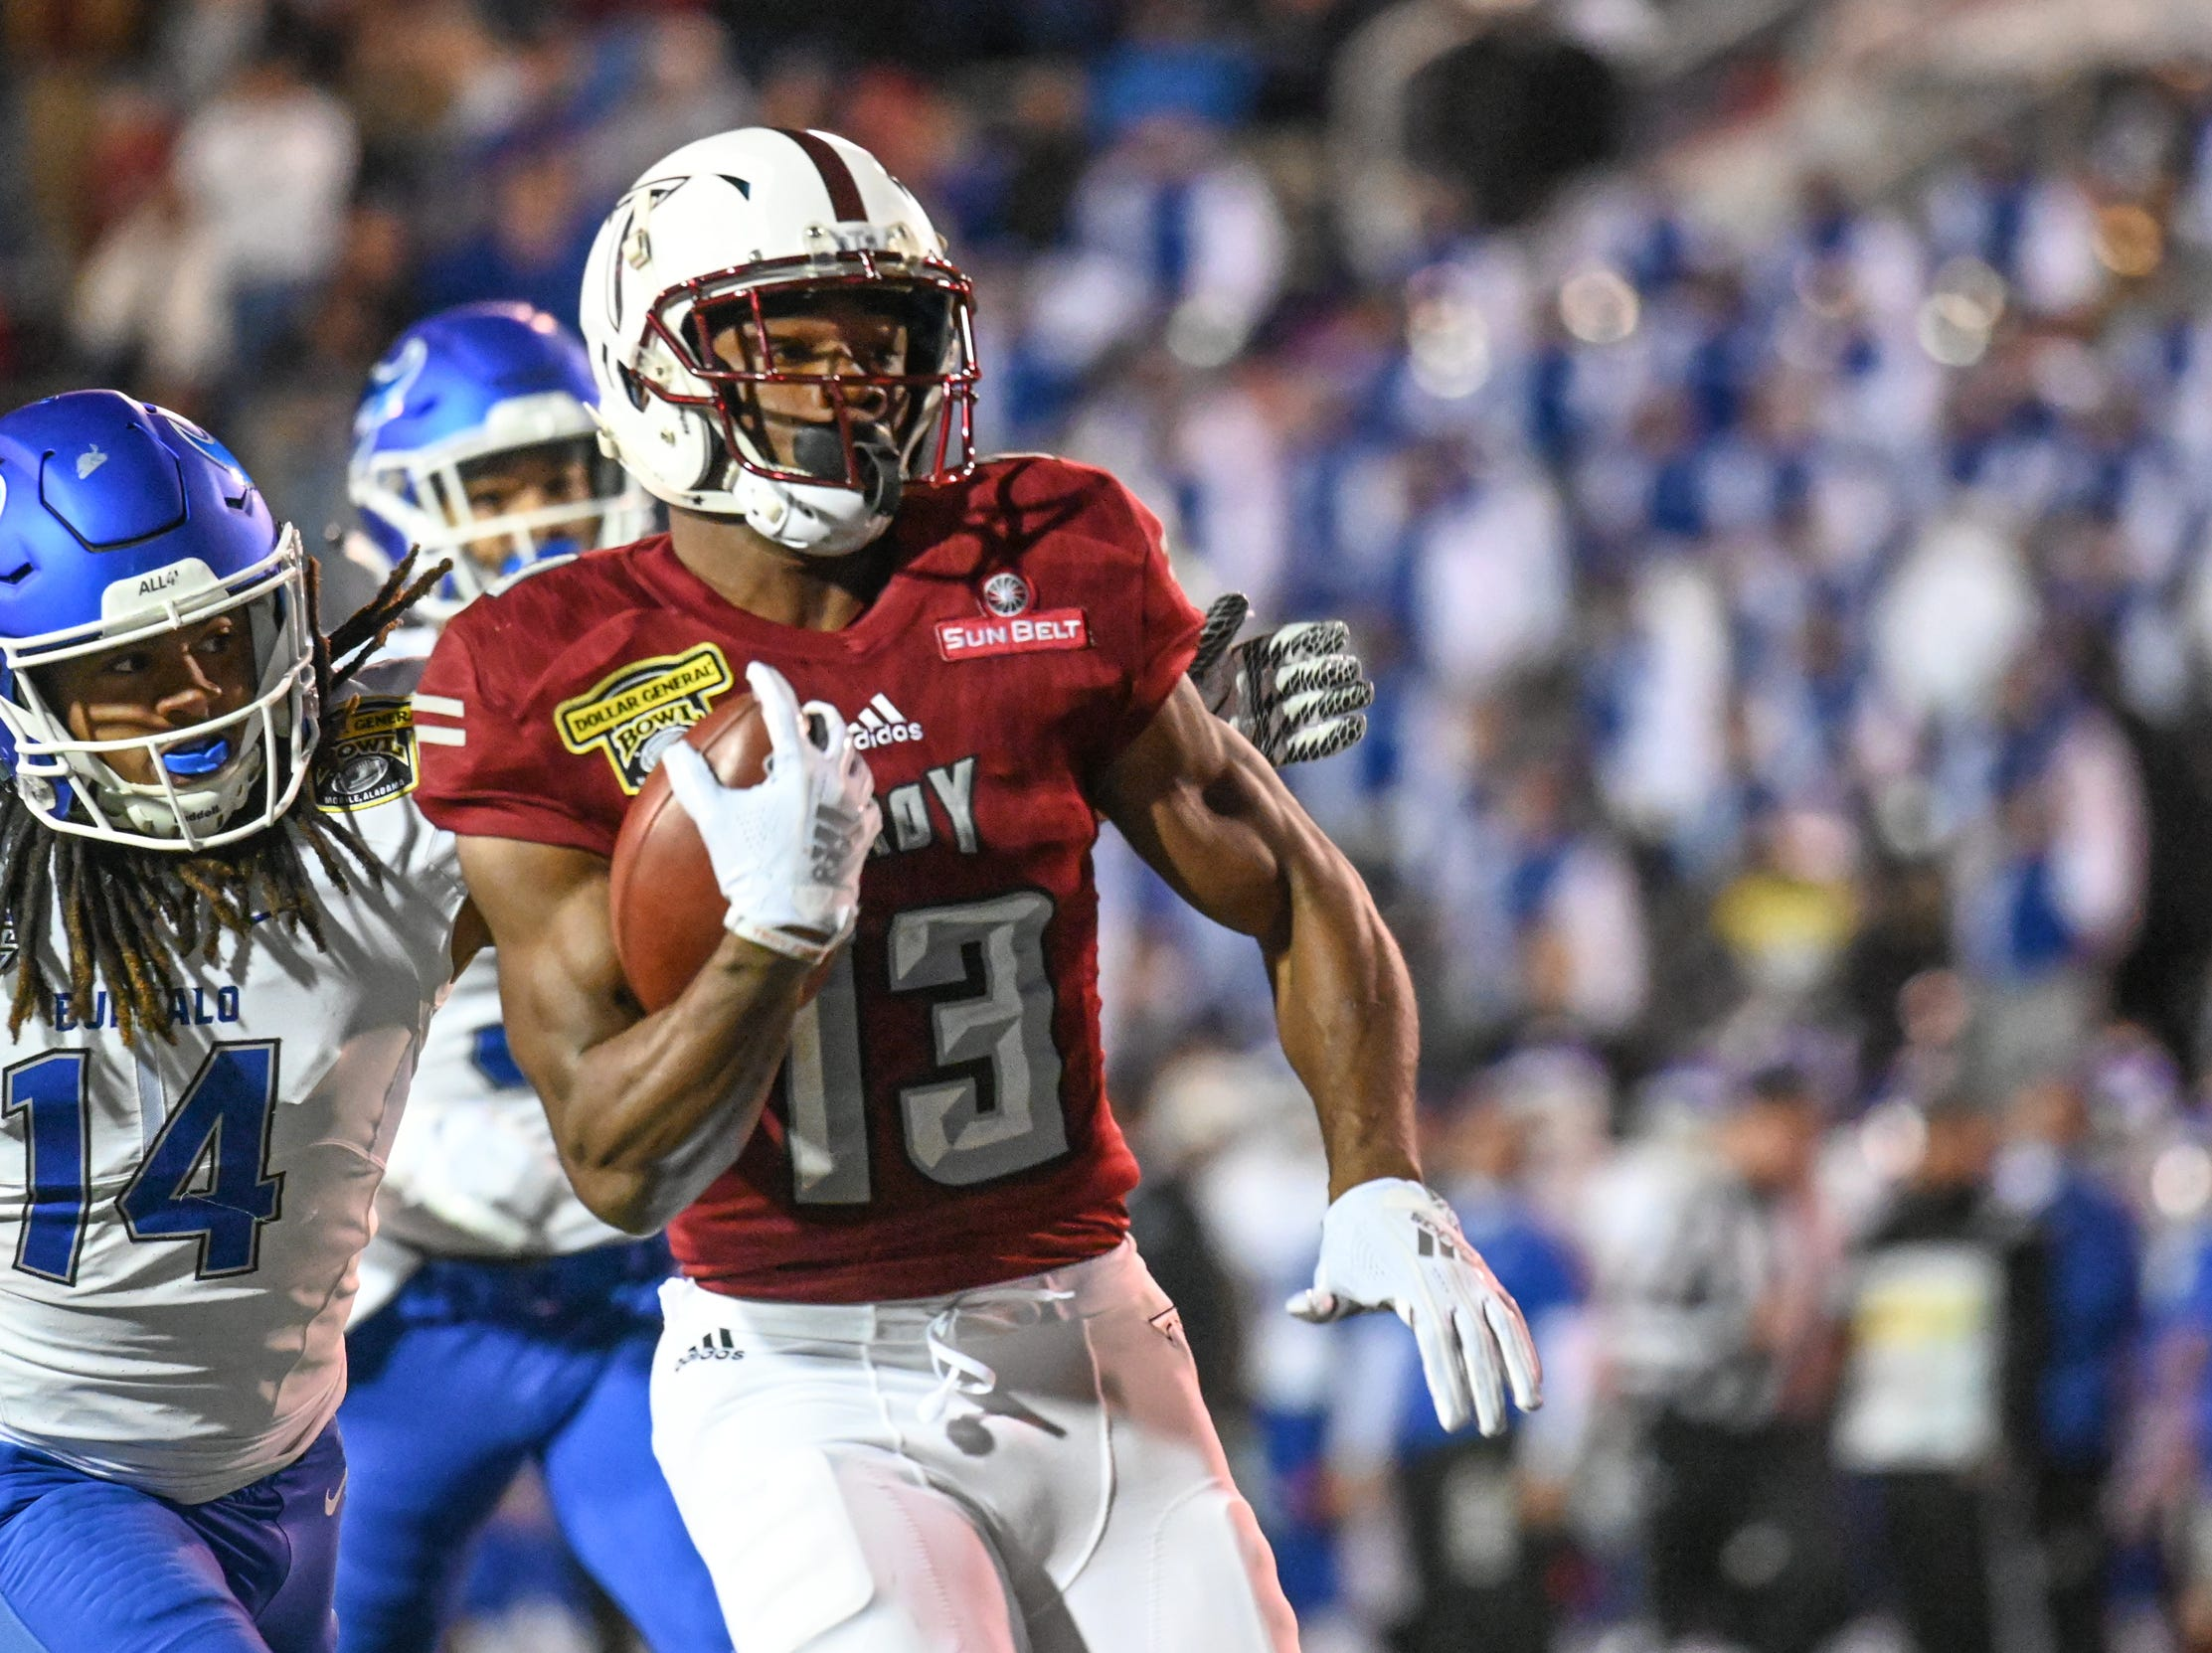 Troy Trojans wide receiver Tray Eafford (13) runs the ball into the end zone for a touchdown against Buffalo during the Dollar General Bowl held at Ladd-Peebles Stadium in Mobile on Saturday, Dec. 22, 2018.